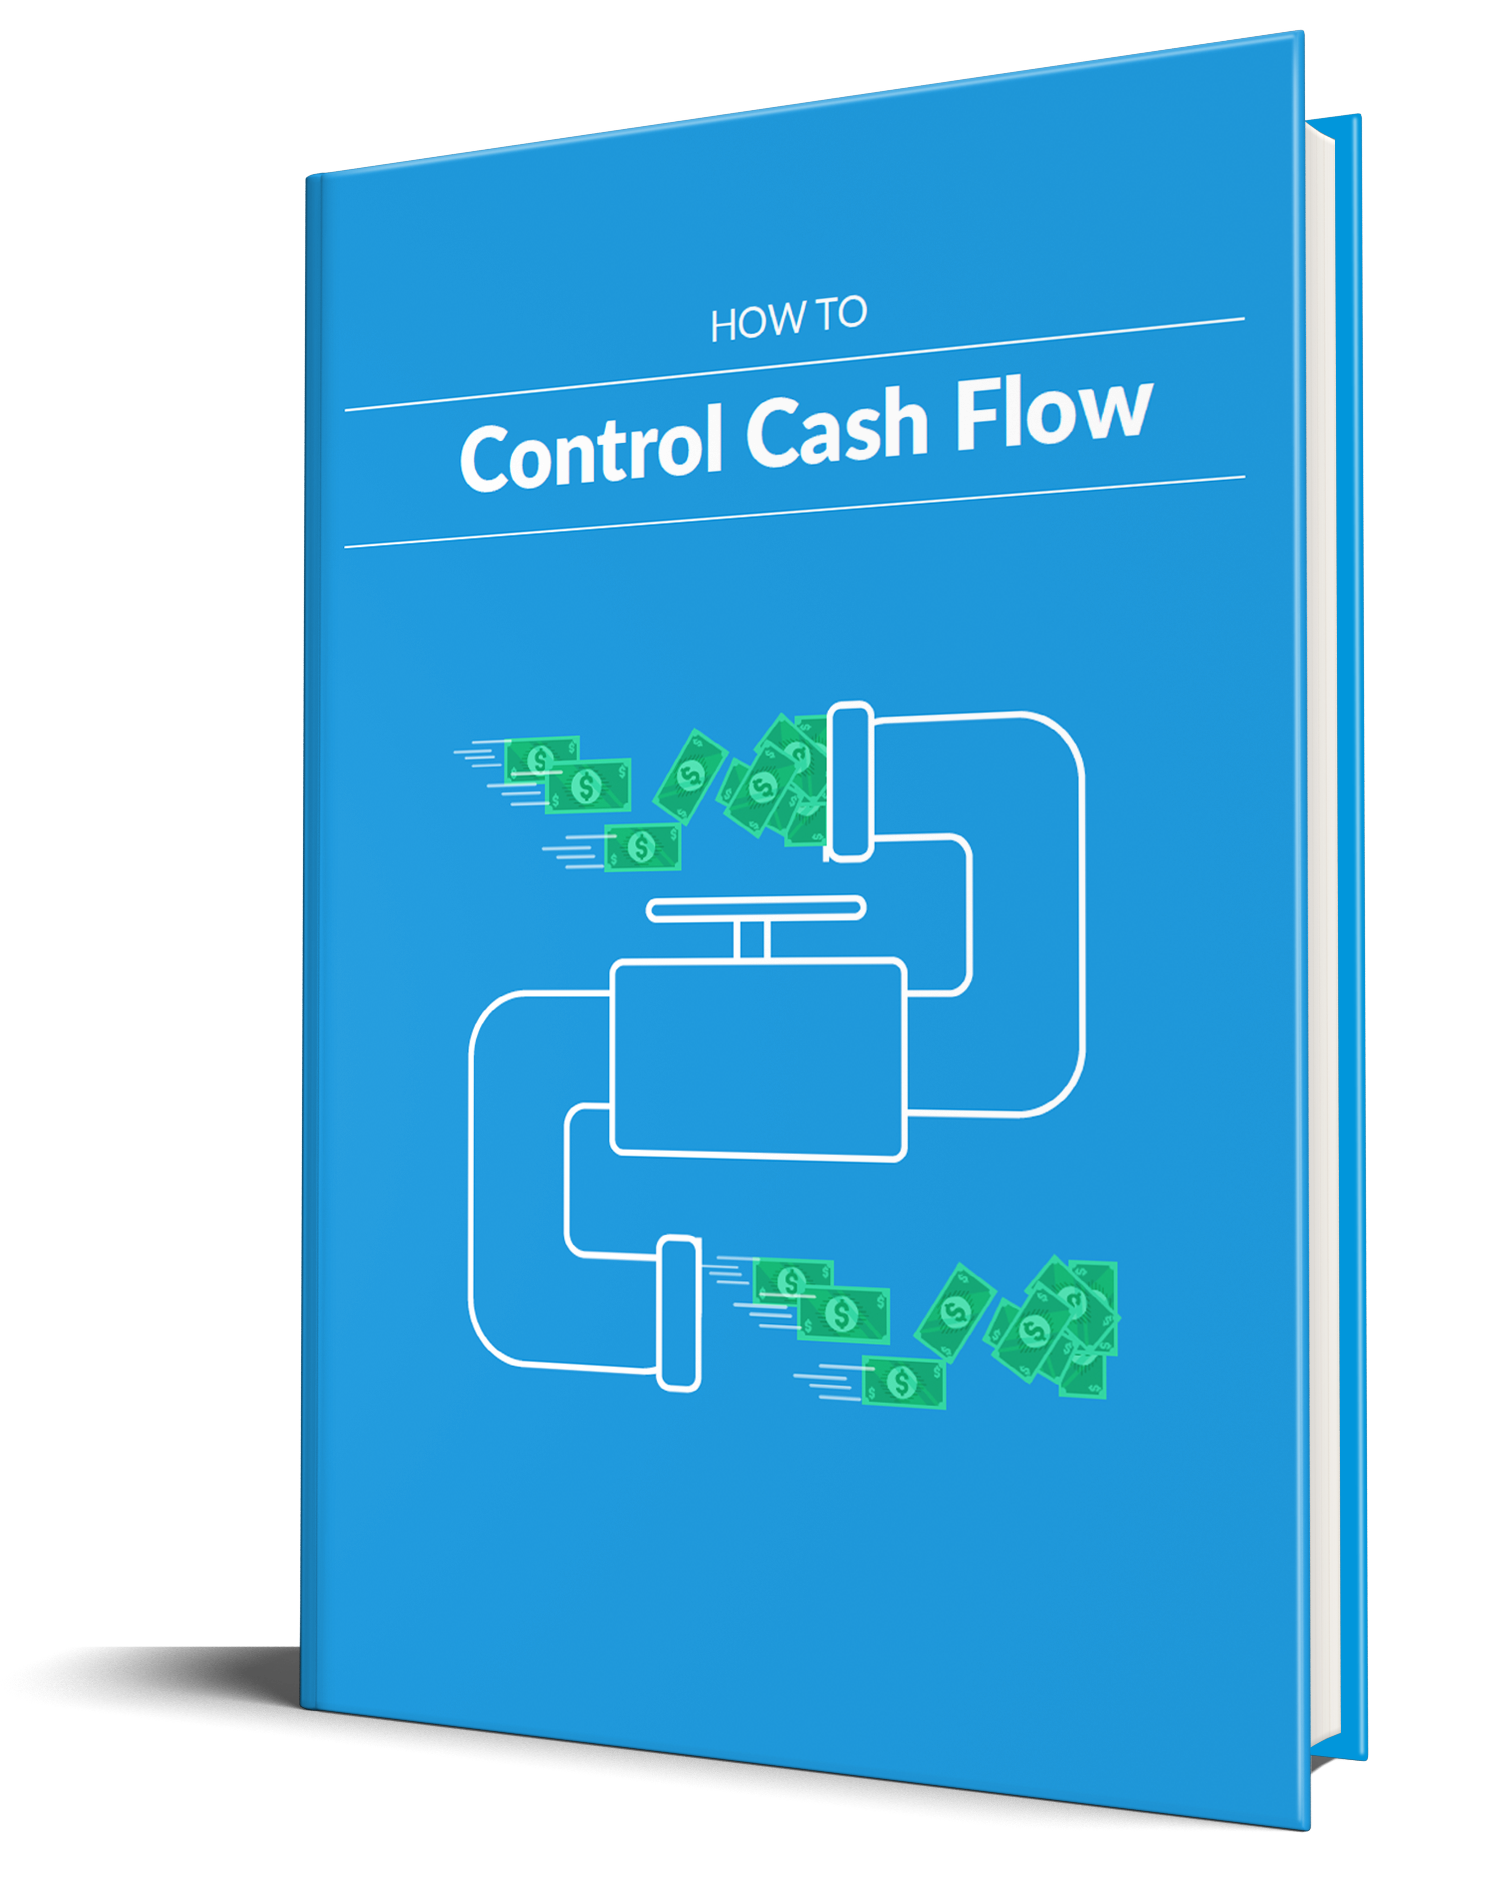 How To Control Cash Flow